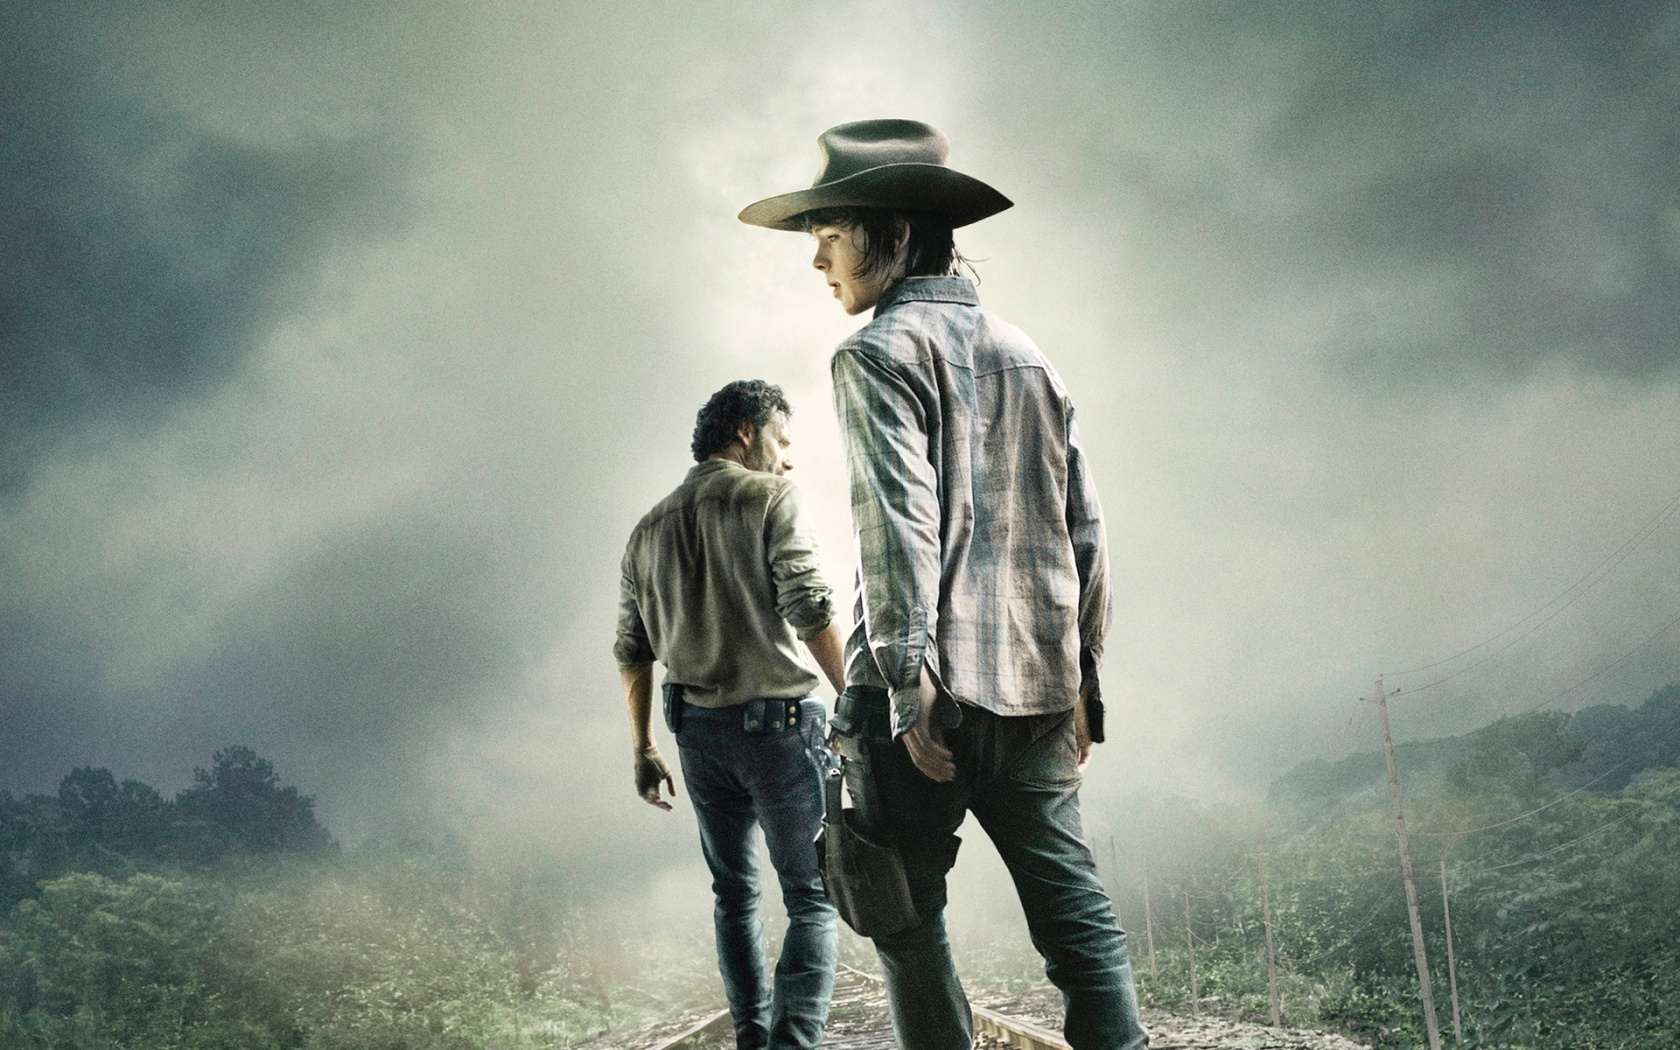 the walking dead 2014 wallpapers in jpg format for free download